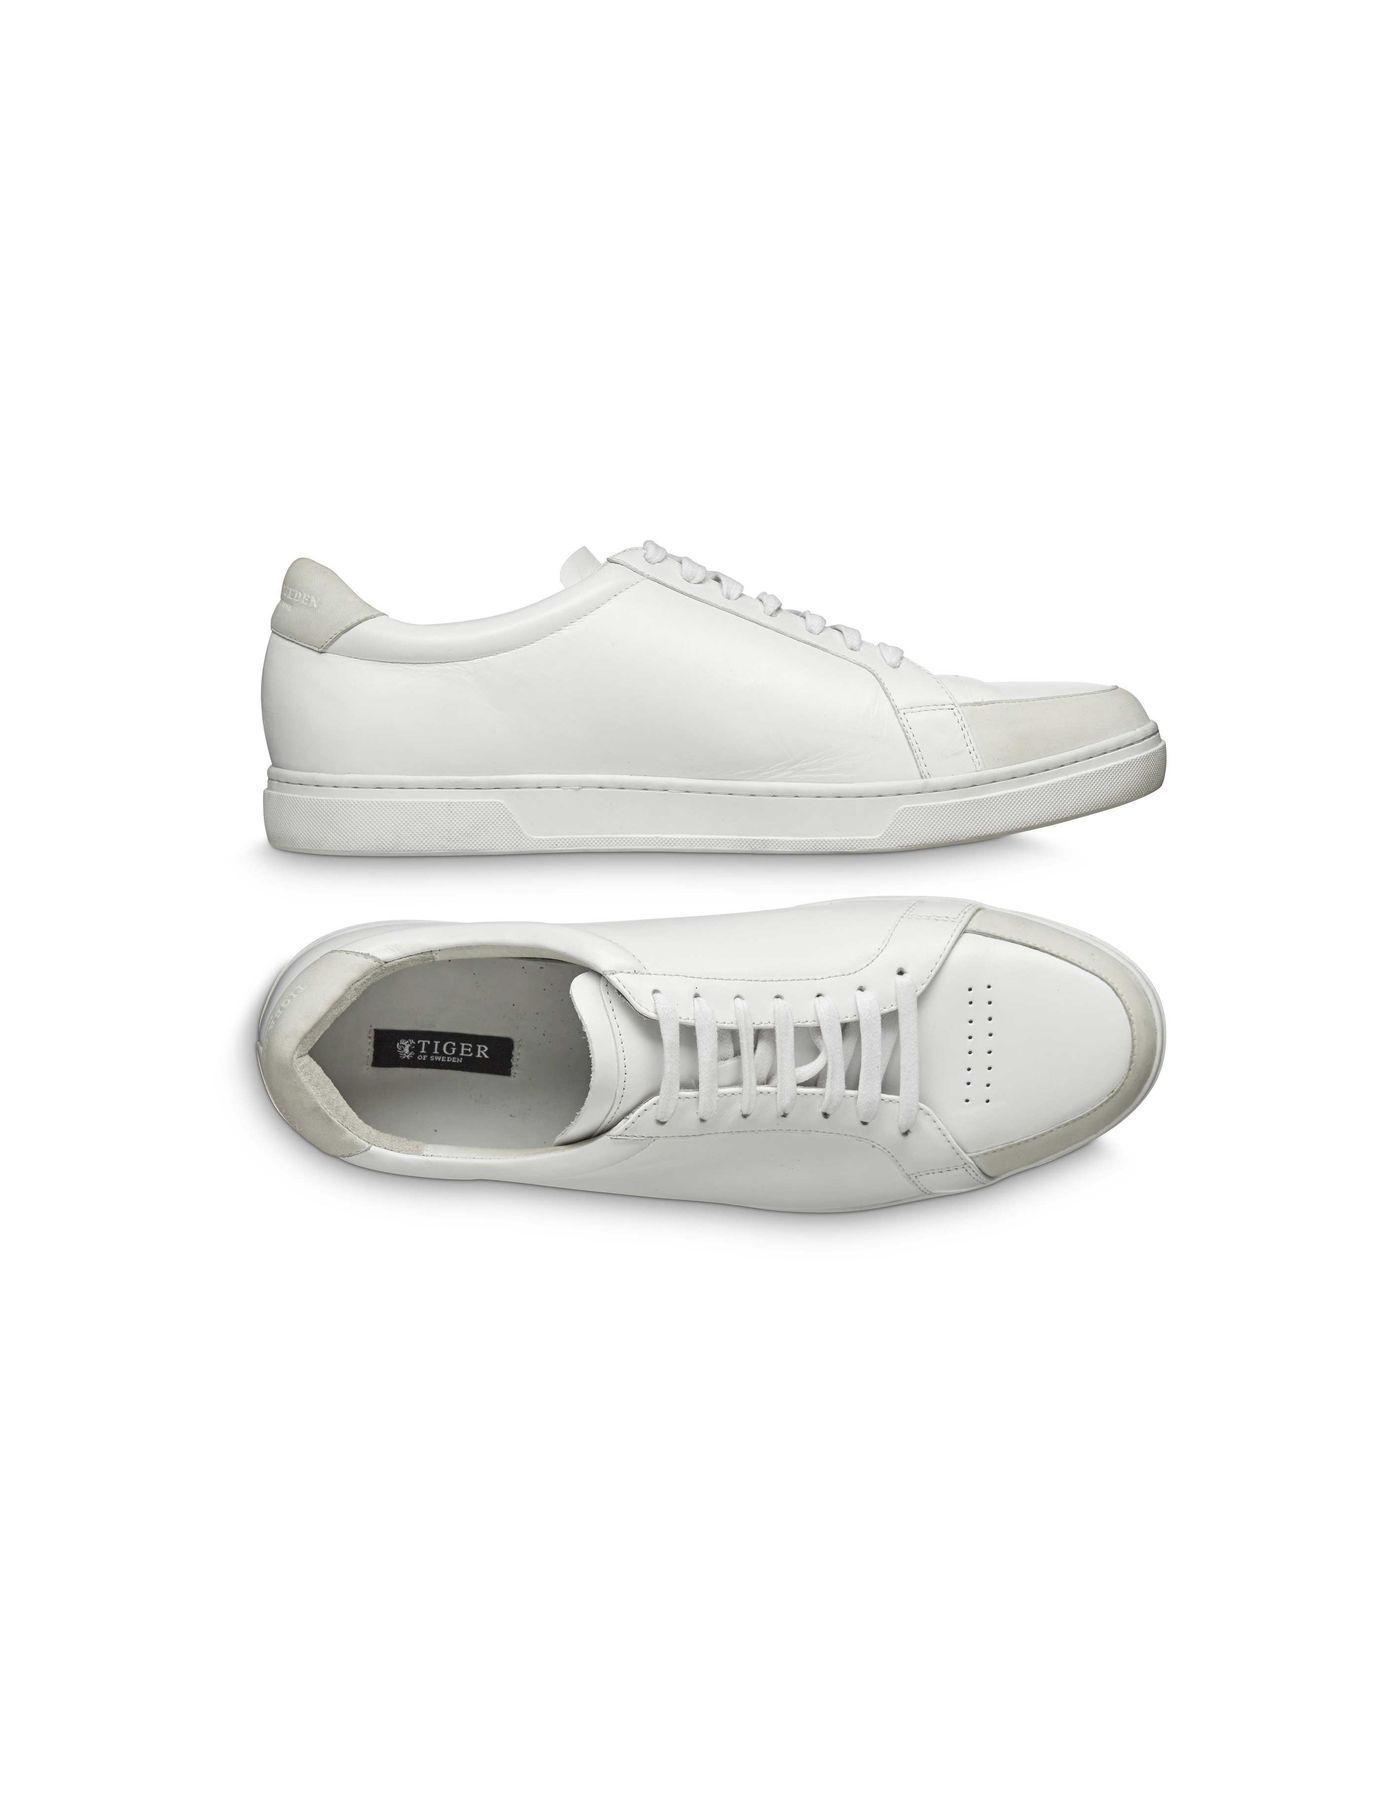 Arne sneakers in White from Tiger of